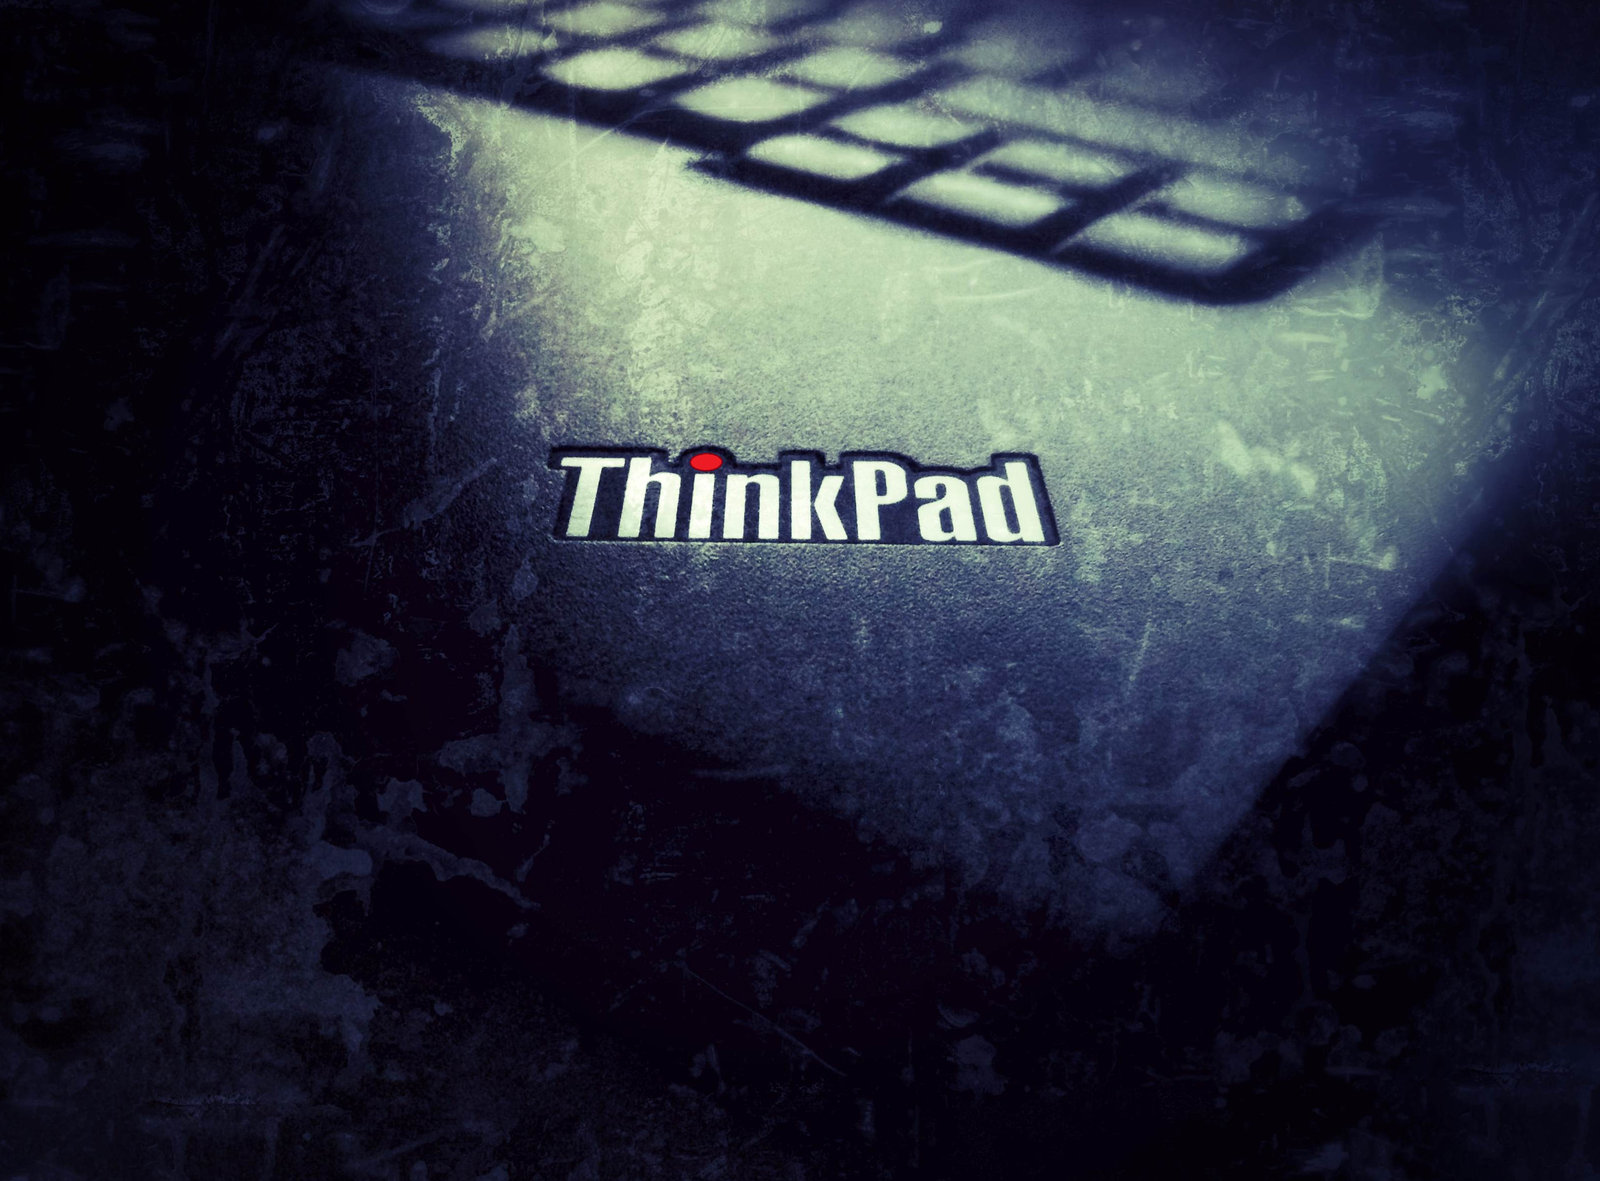 1280x800 wallpaper thinkpad - photo #44